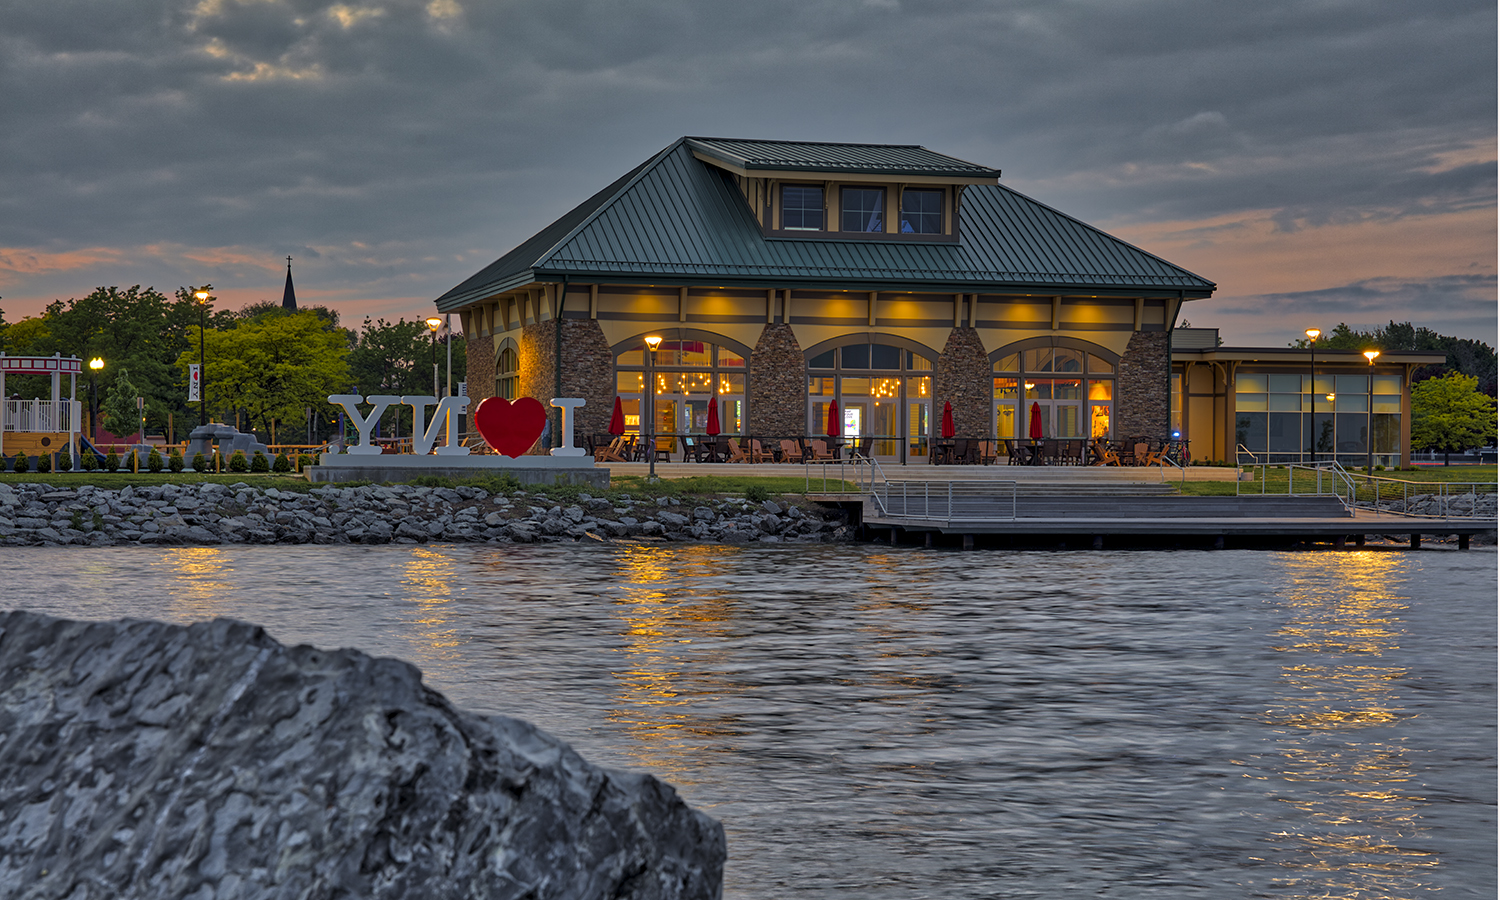 Dusk at the New York State Finger Lakes Welcome Center in Geneva., N.Y.